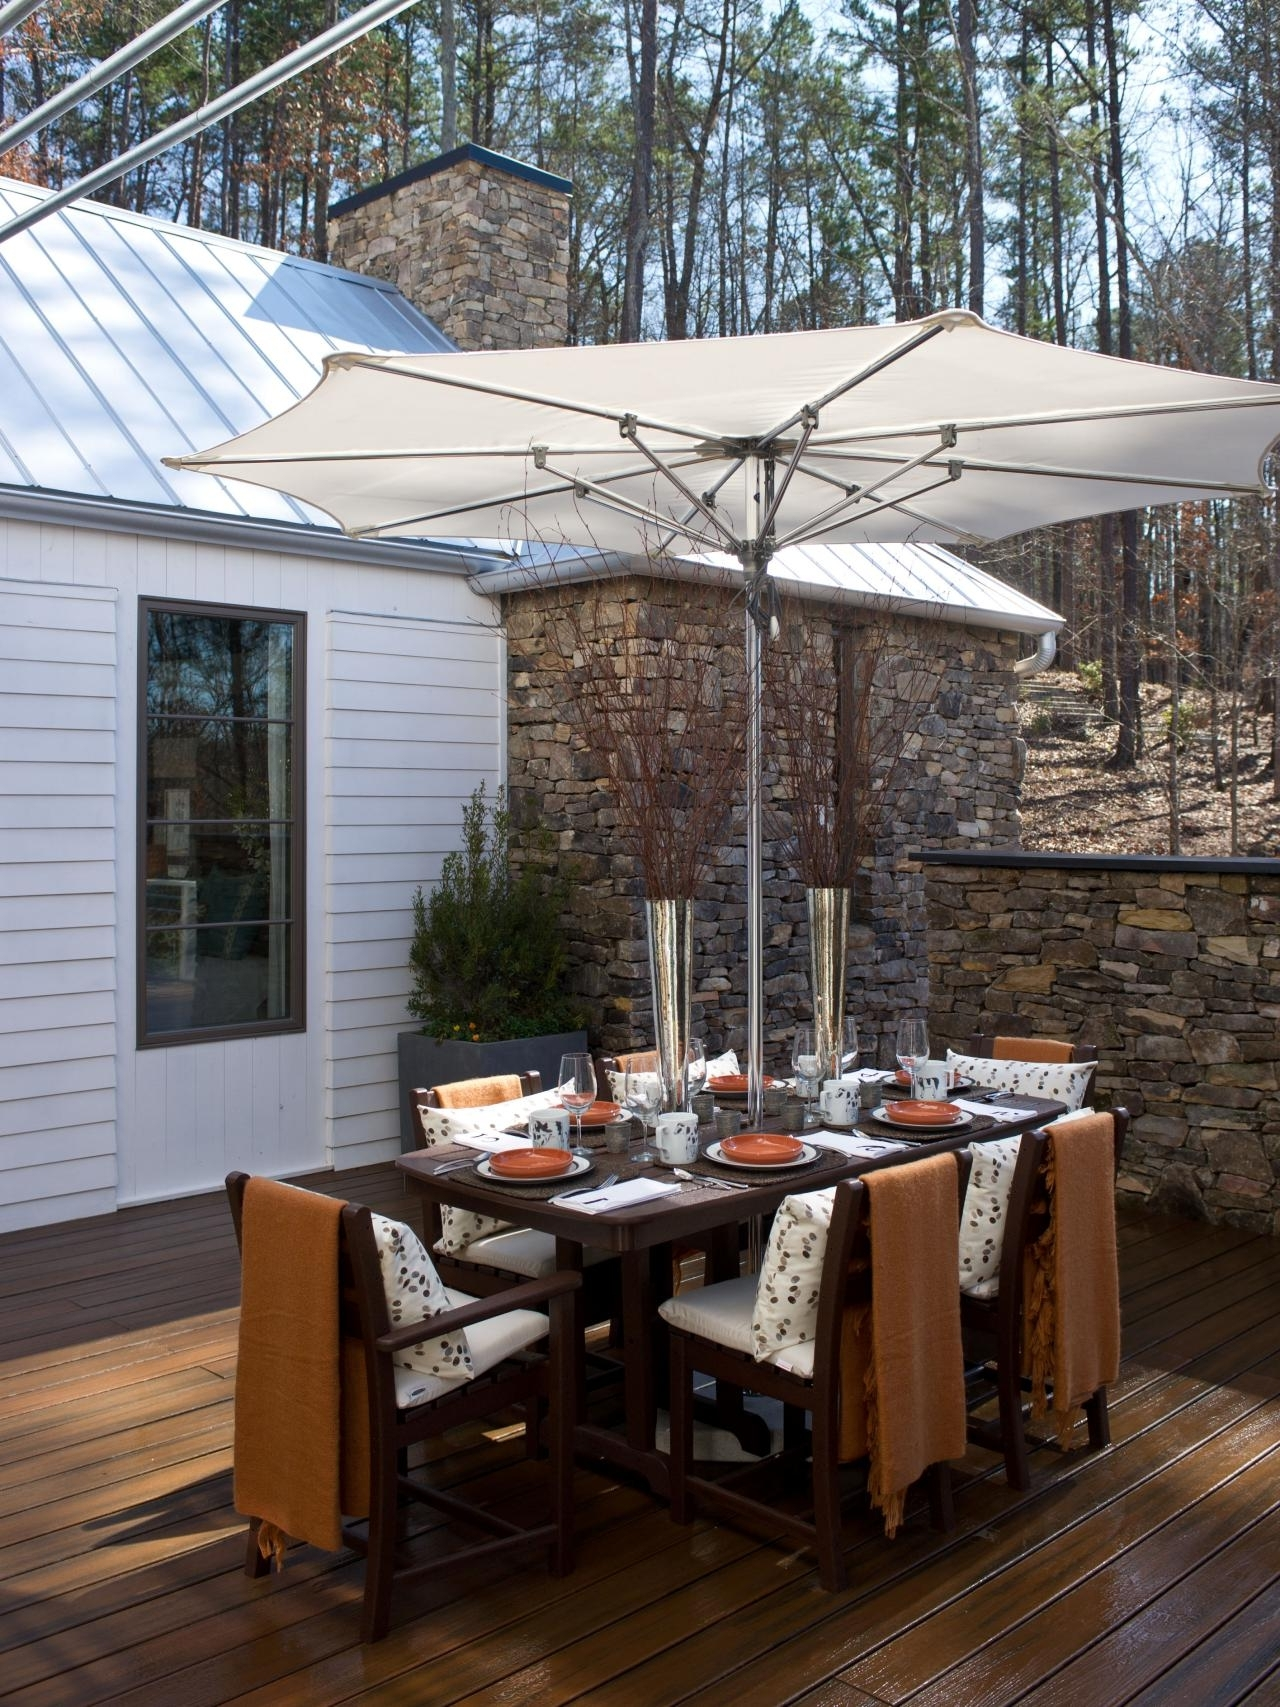 Patio Dining Umbrellas Intended For Best And Newest Patio Dining Sets With Umbrella Surprising Pictures Concept Full (View 9 of 20)